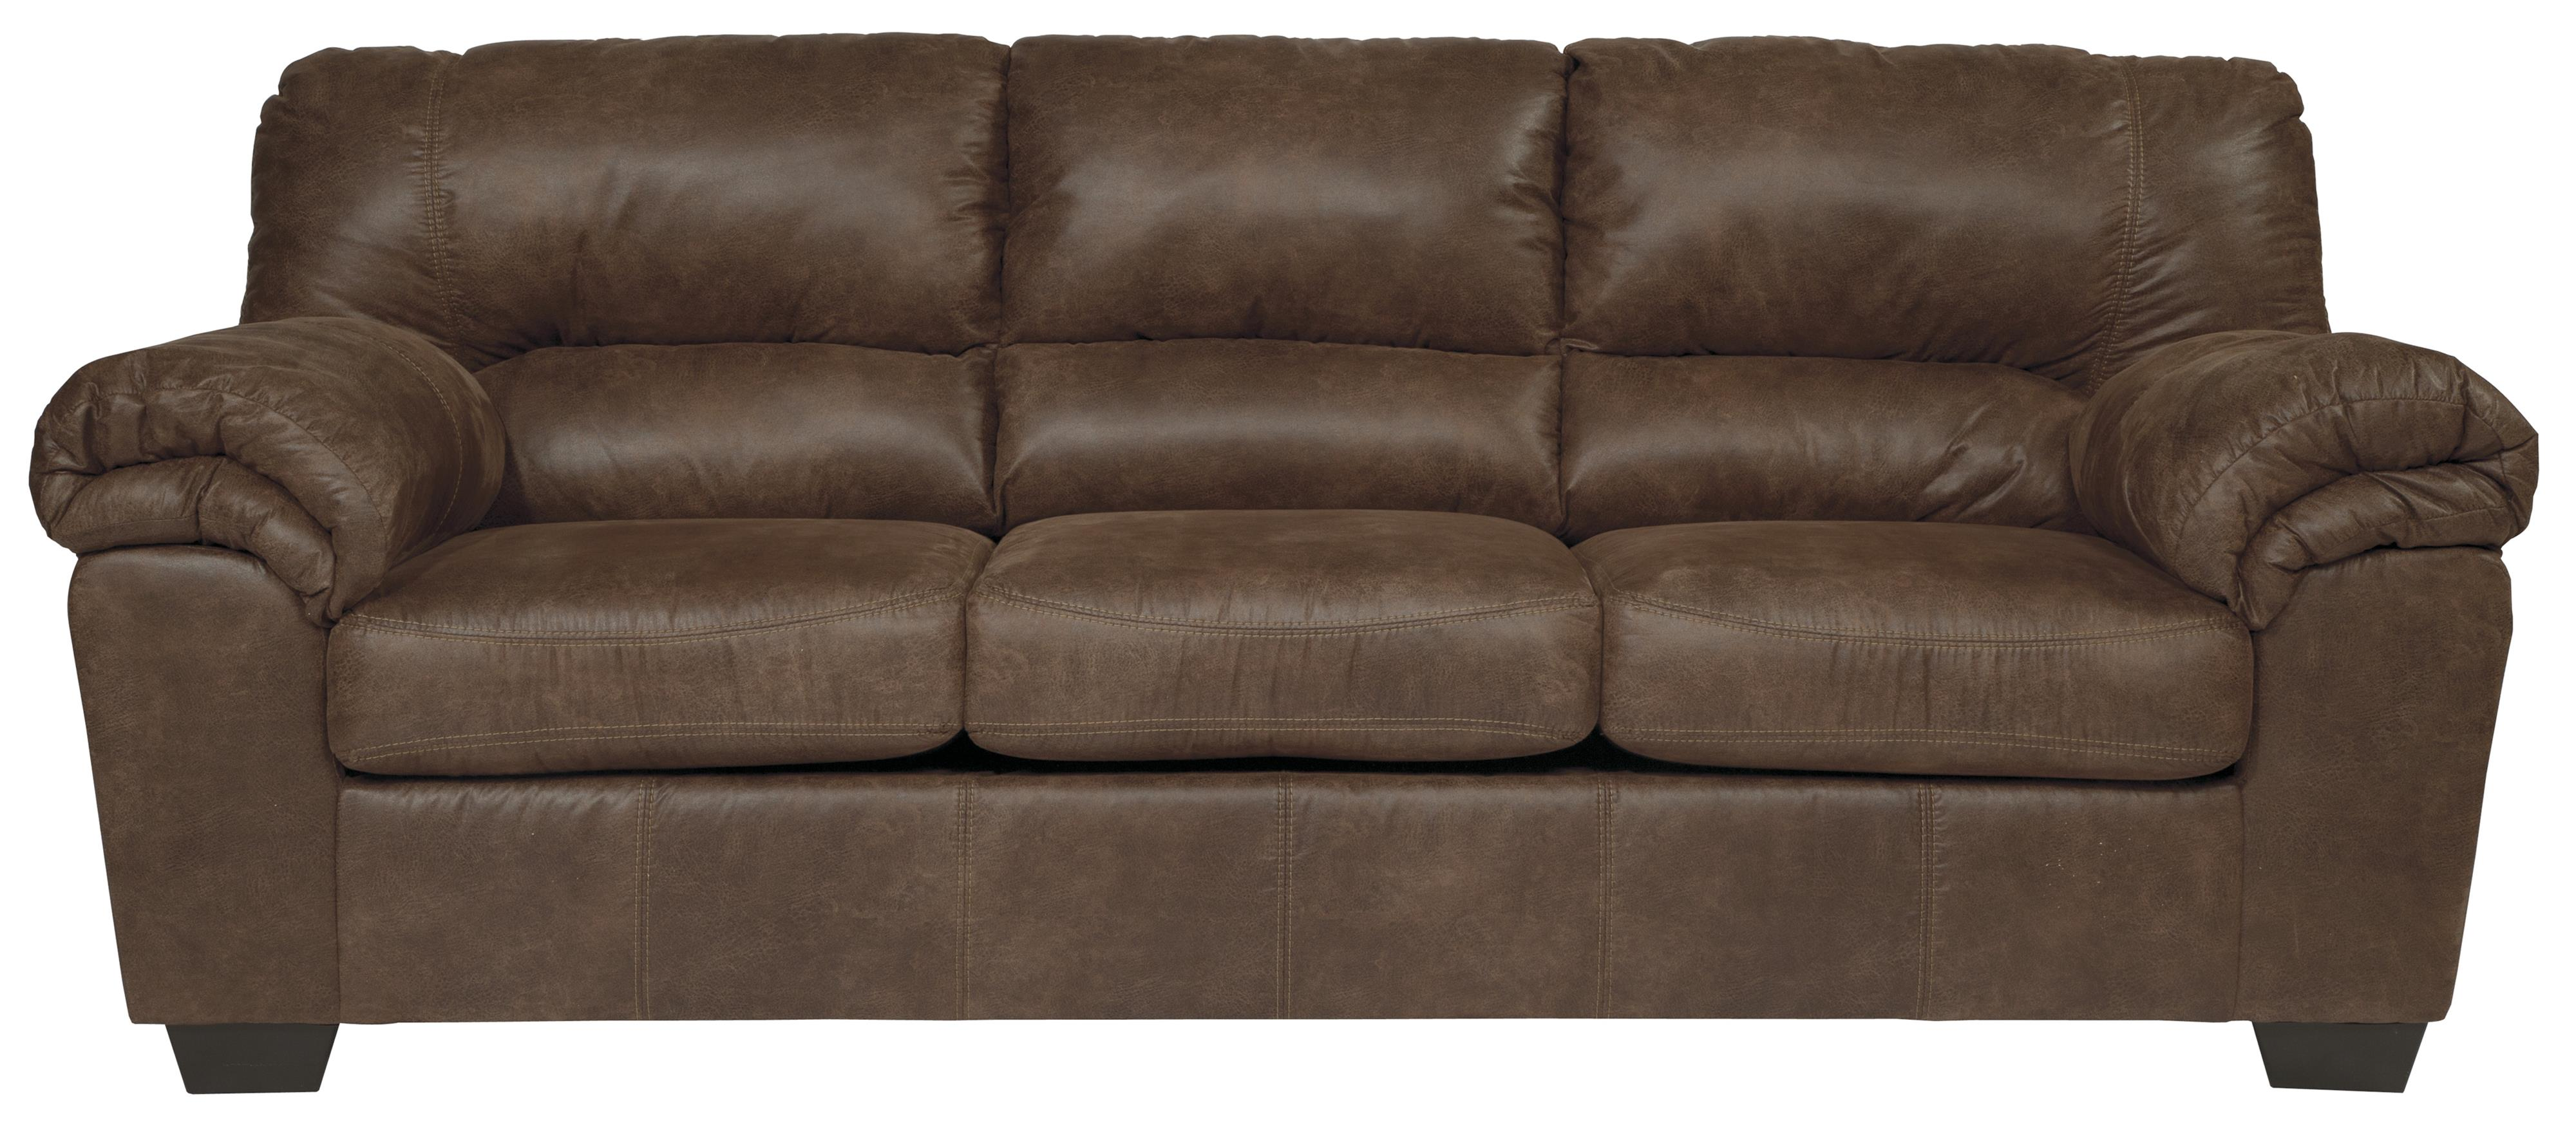 Bladen Bladen Full Couch Sleeper by Ashley at Morris Home